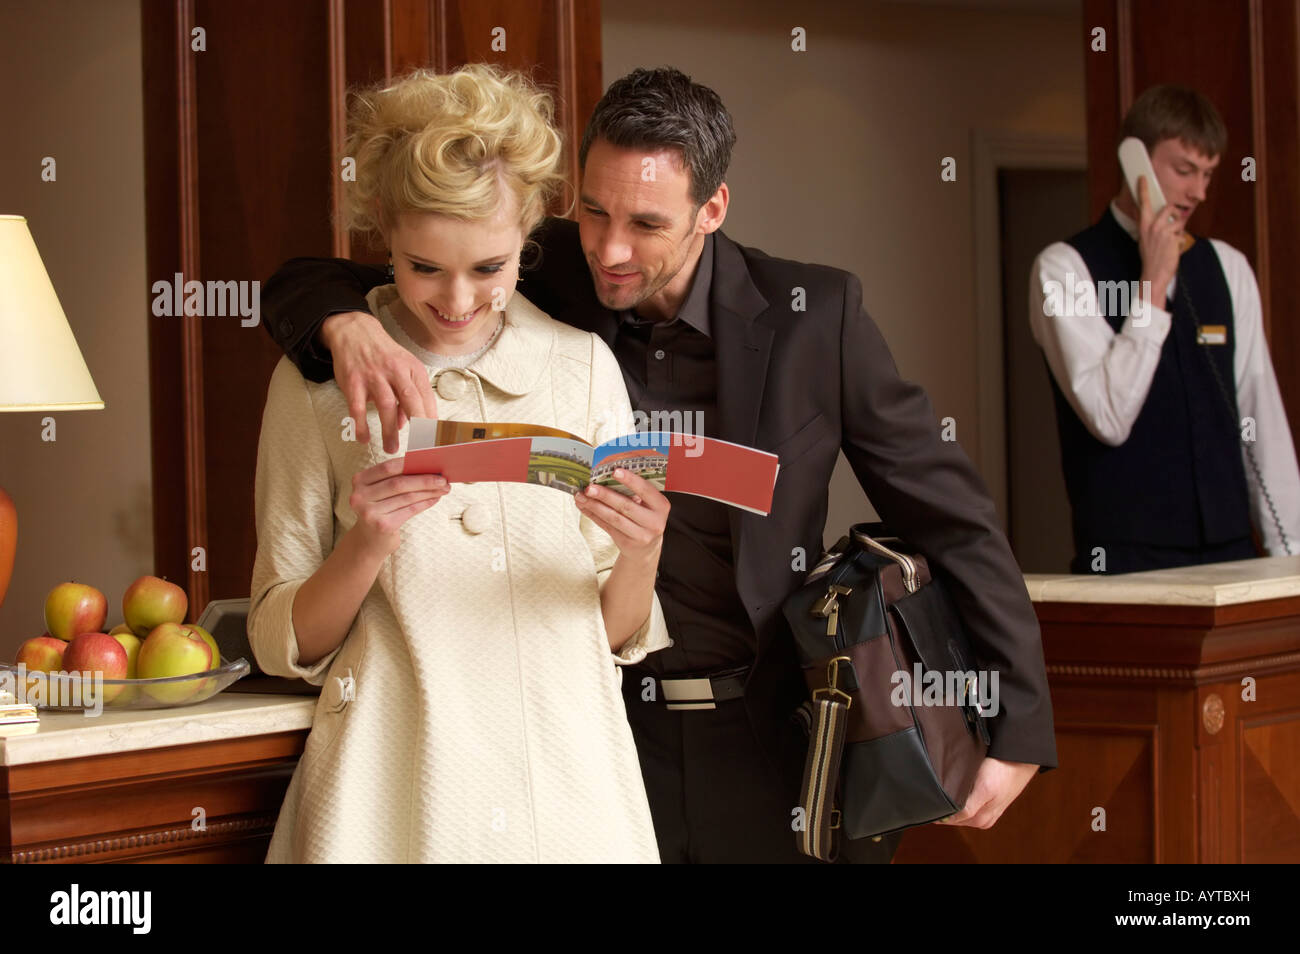 Couple reading a hotel flyer - Stock Image